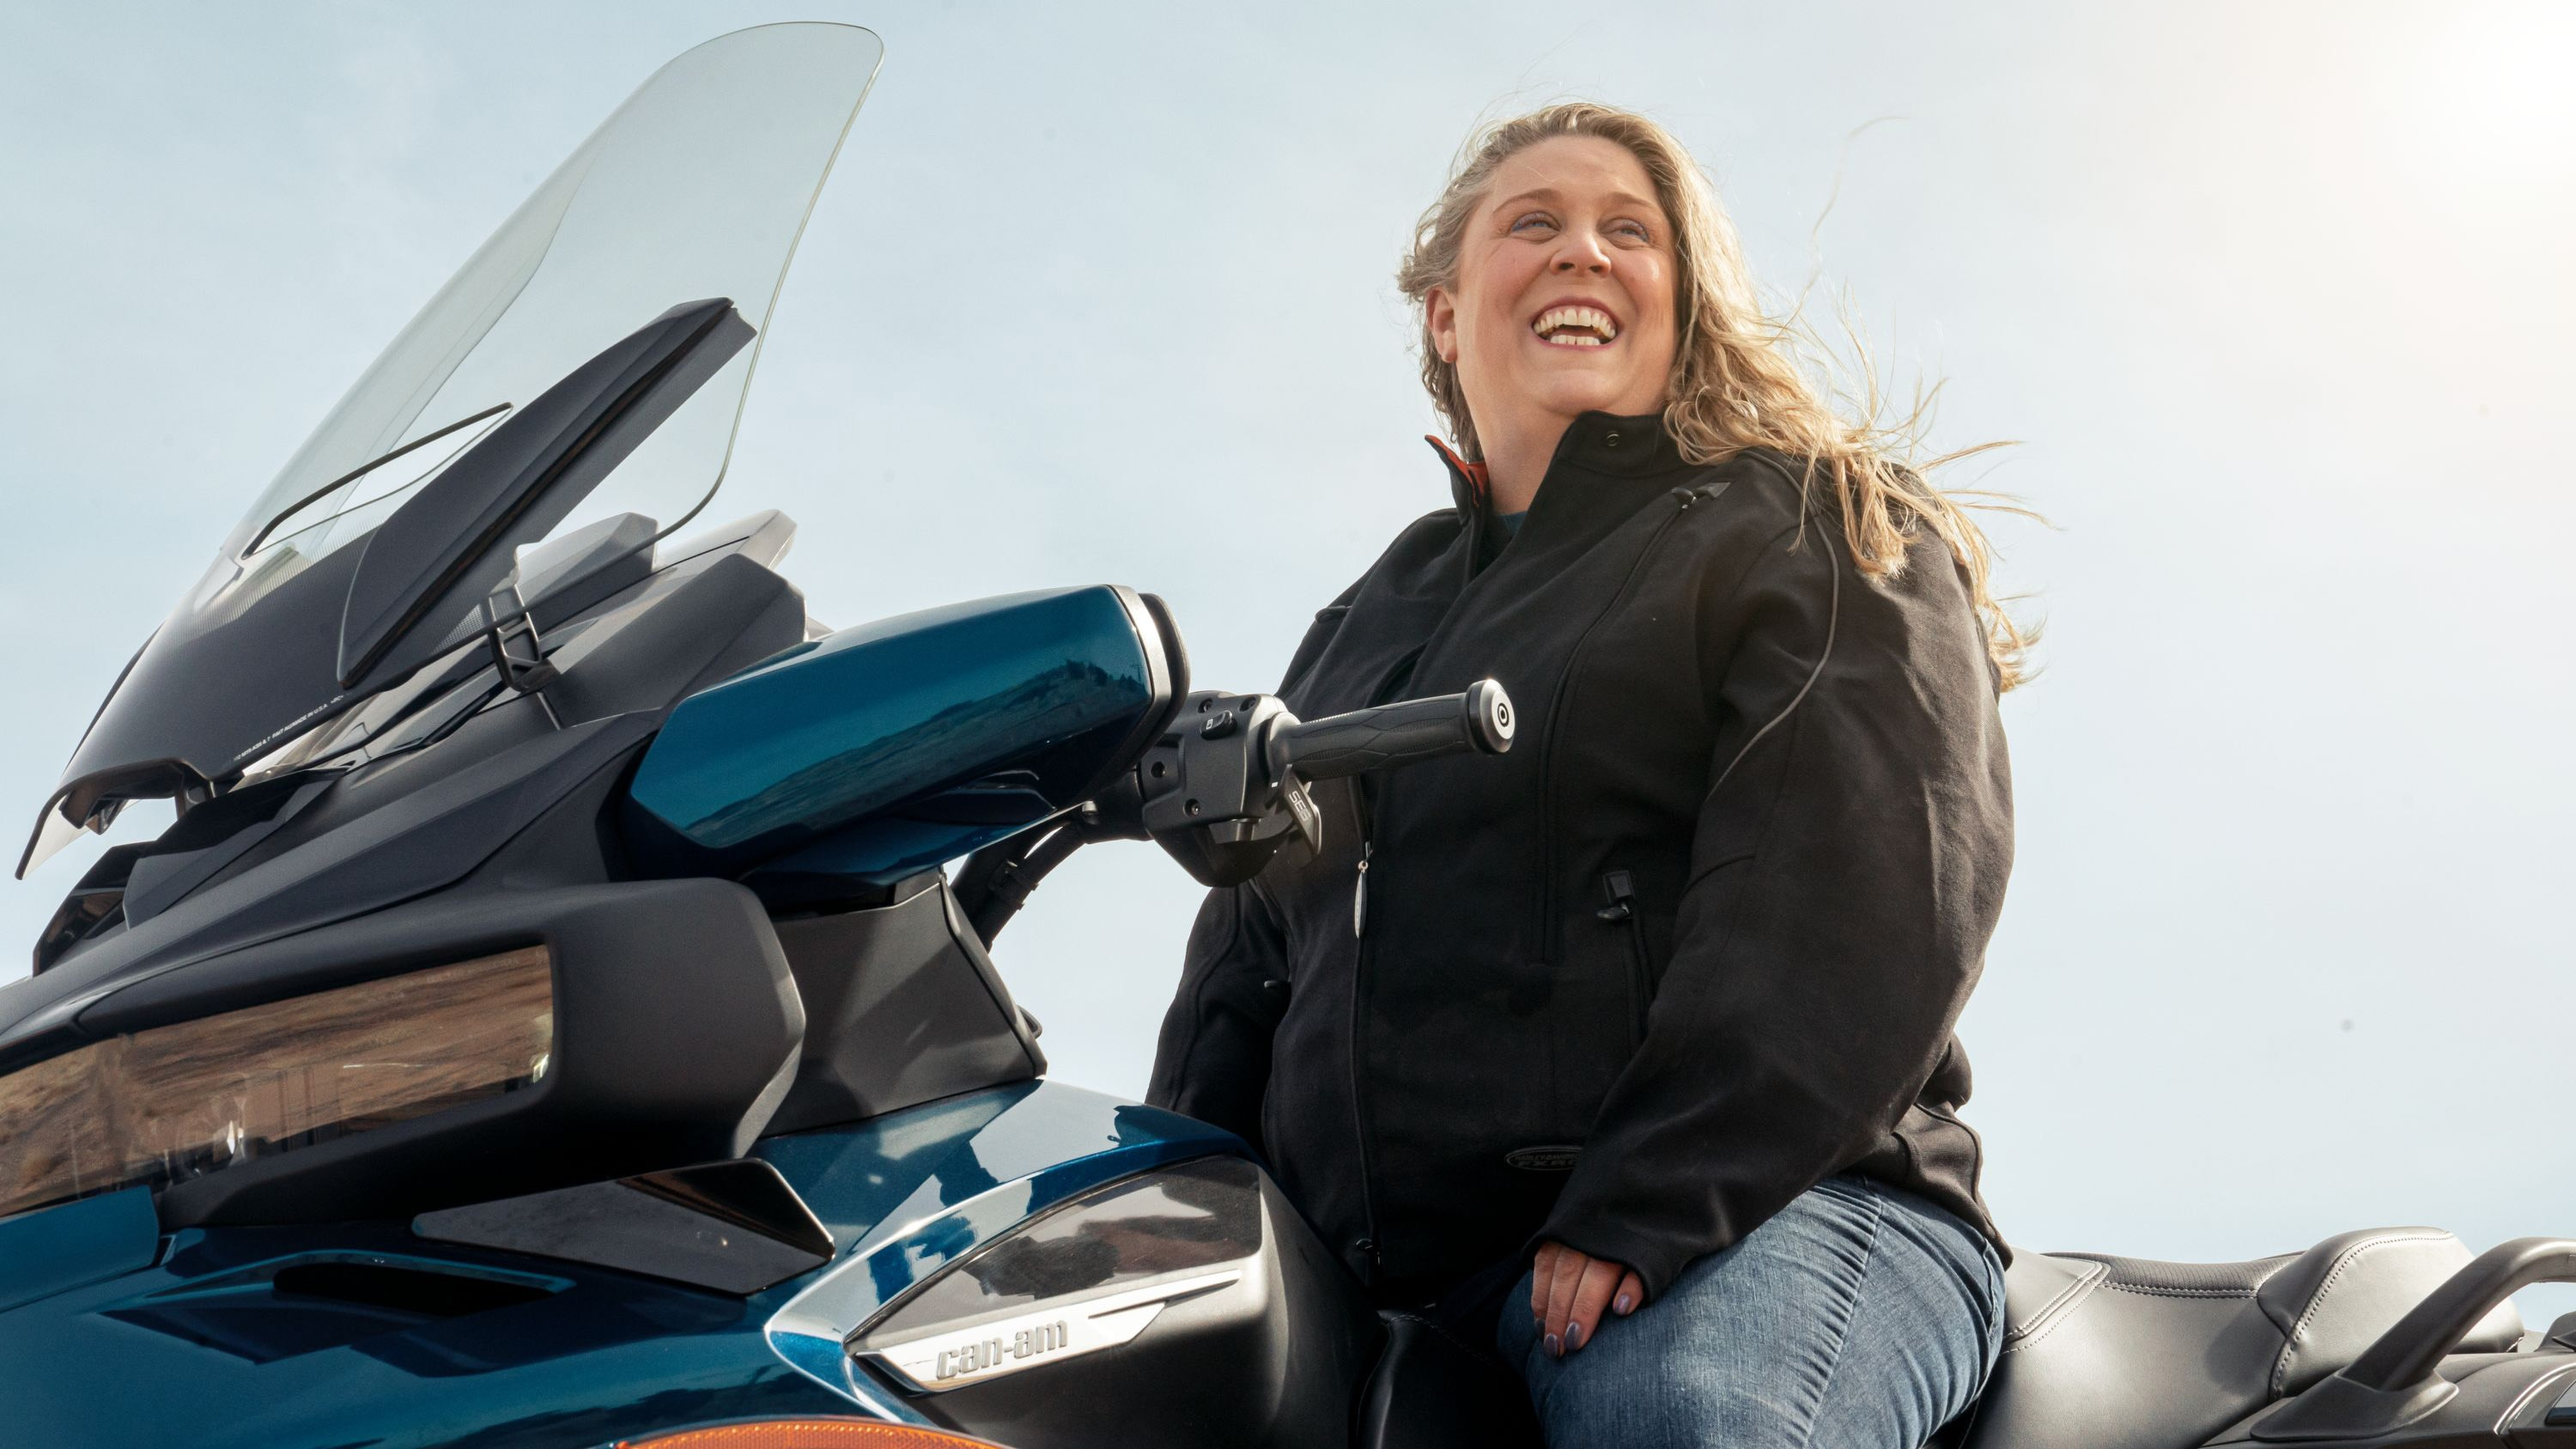 A woman smiling while on her vehicle